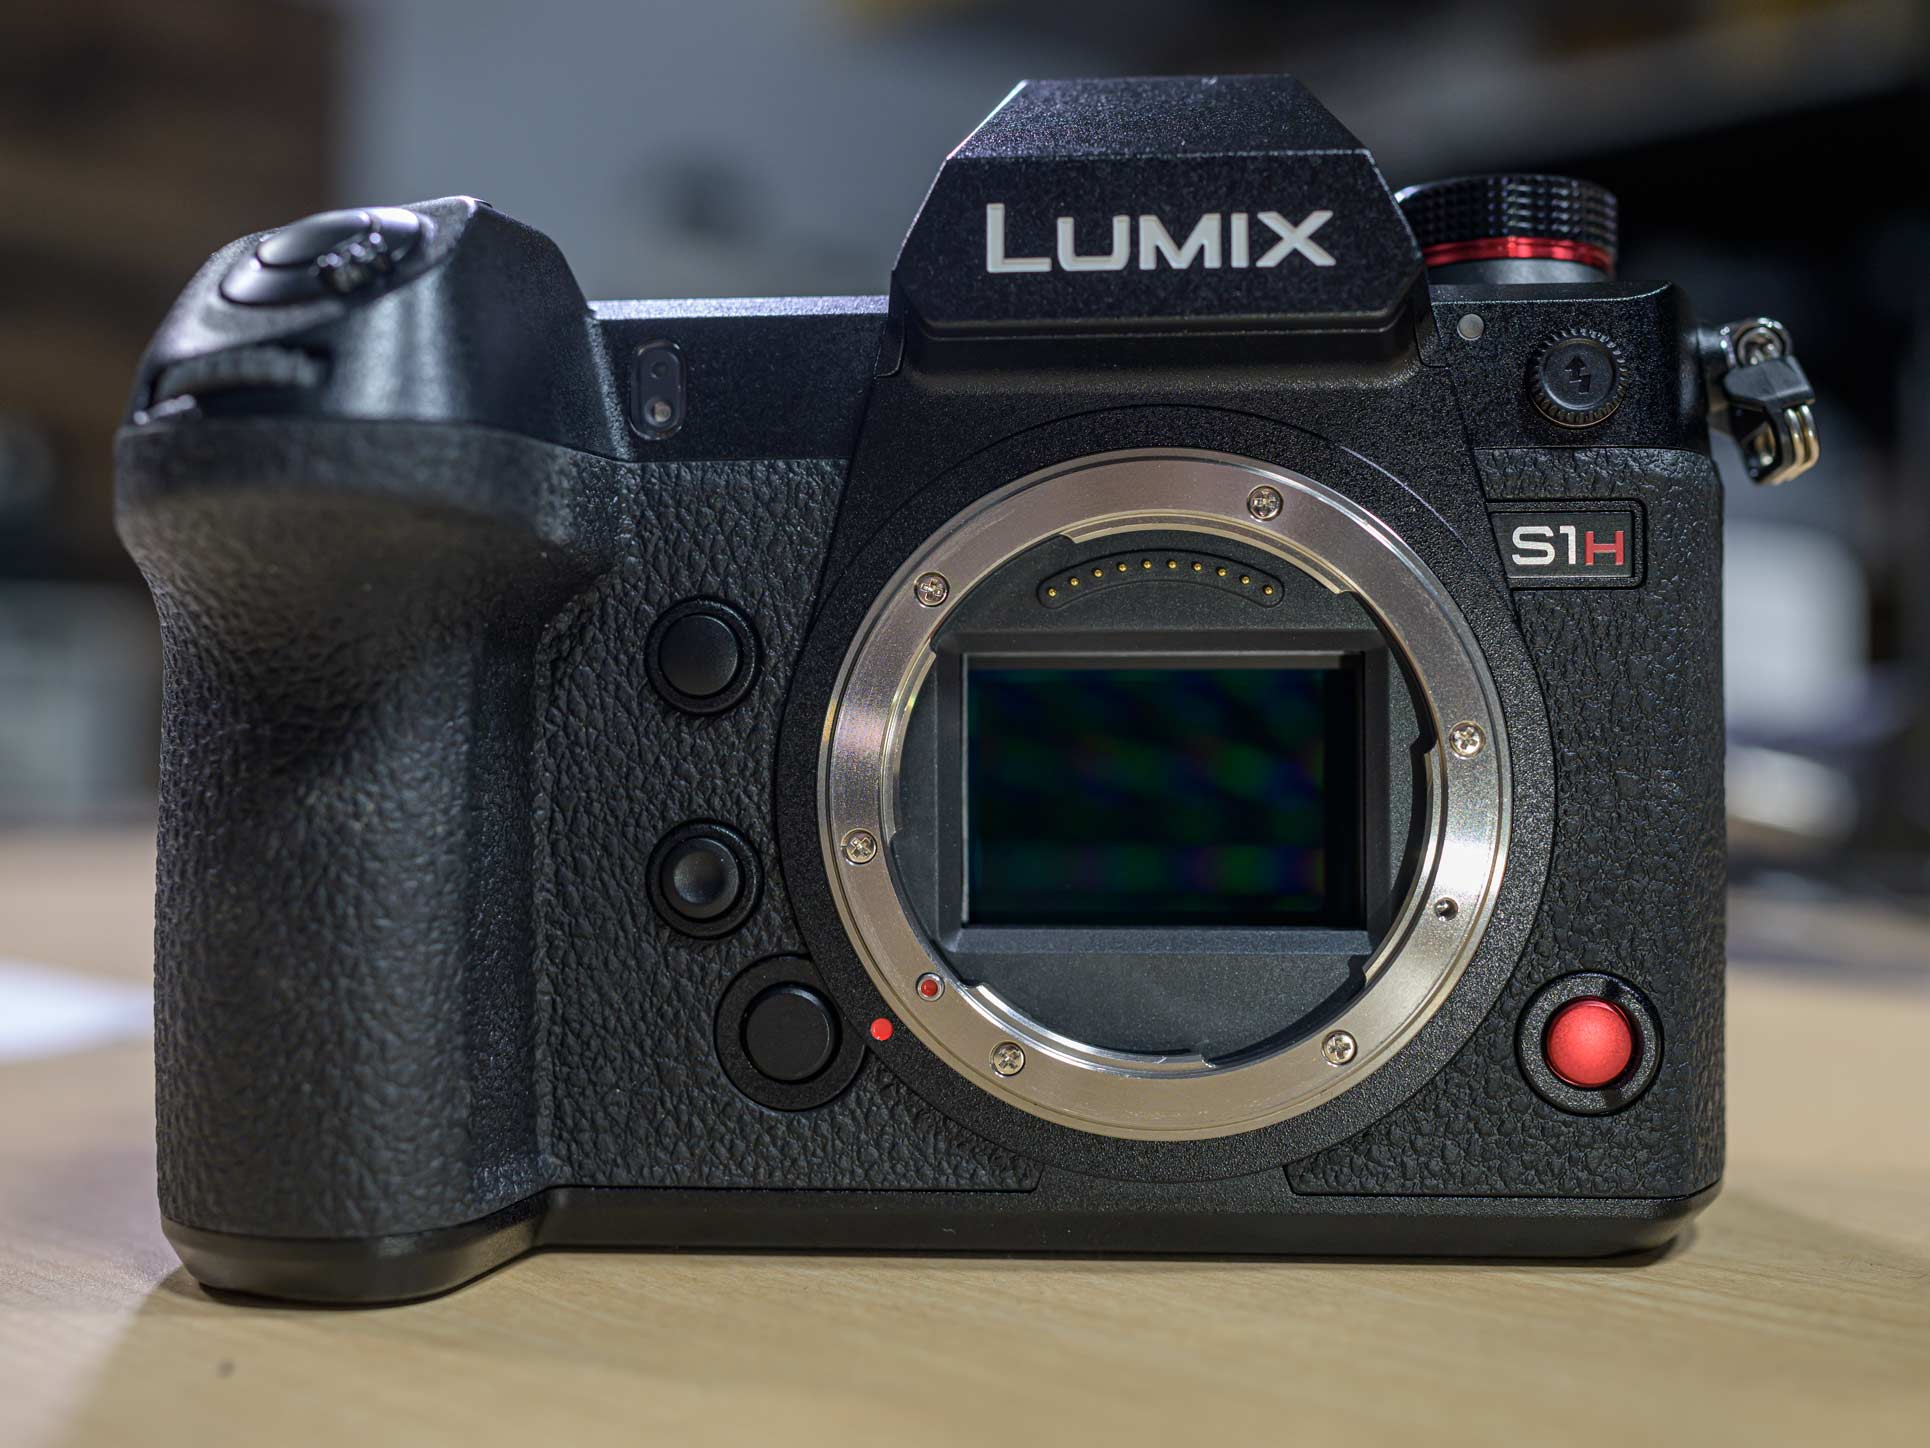 Panasonic LUMIX S1H hands-on review: Big camera, big value